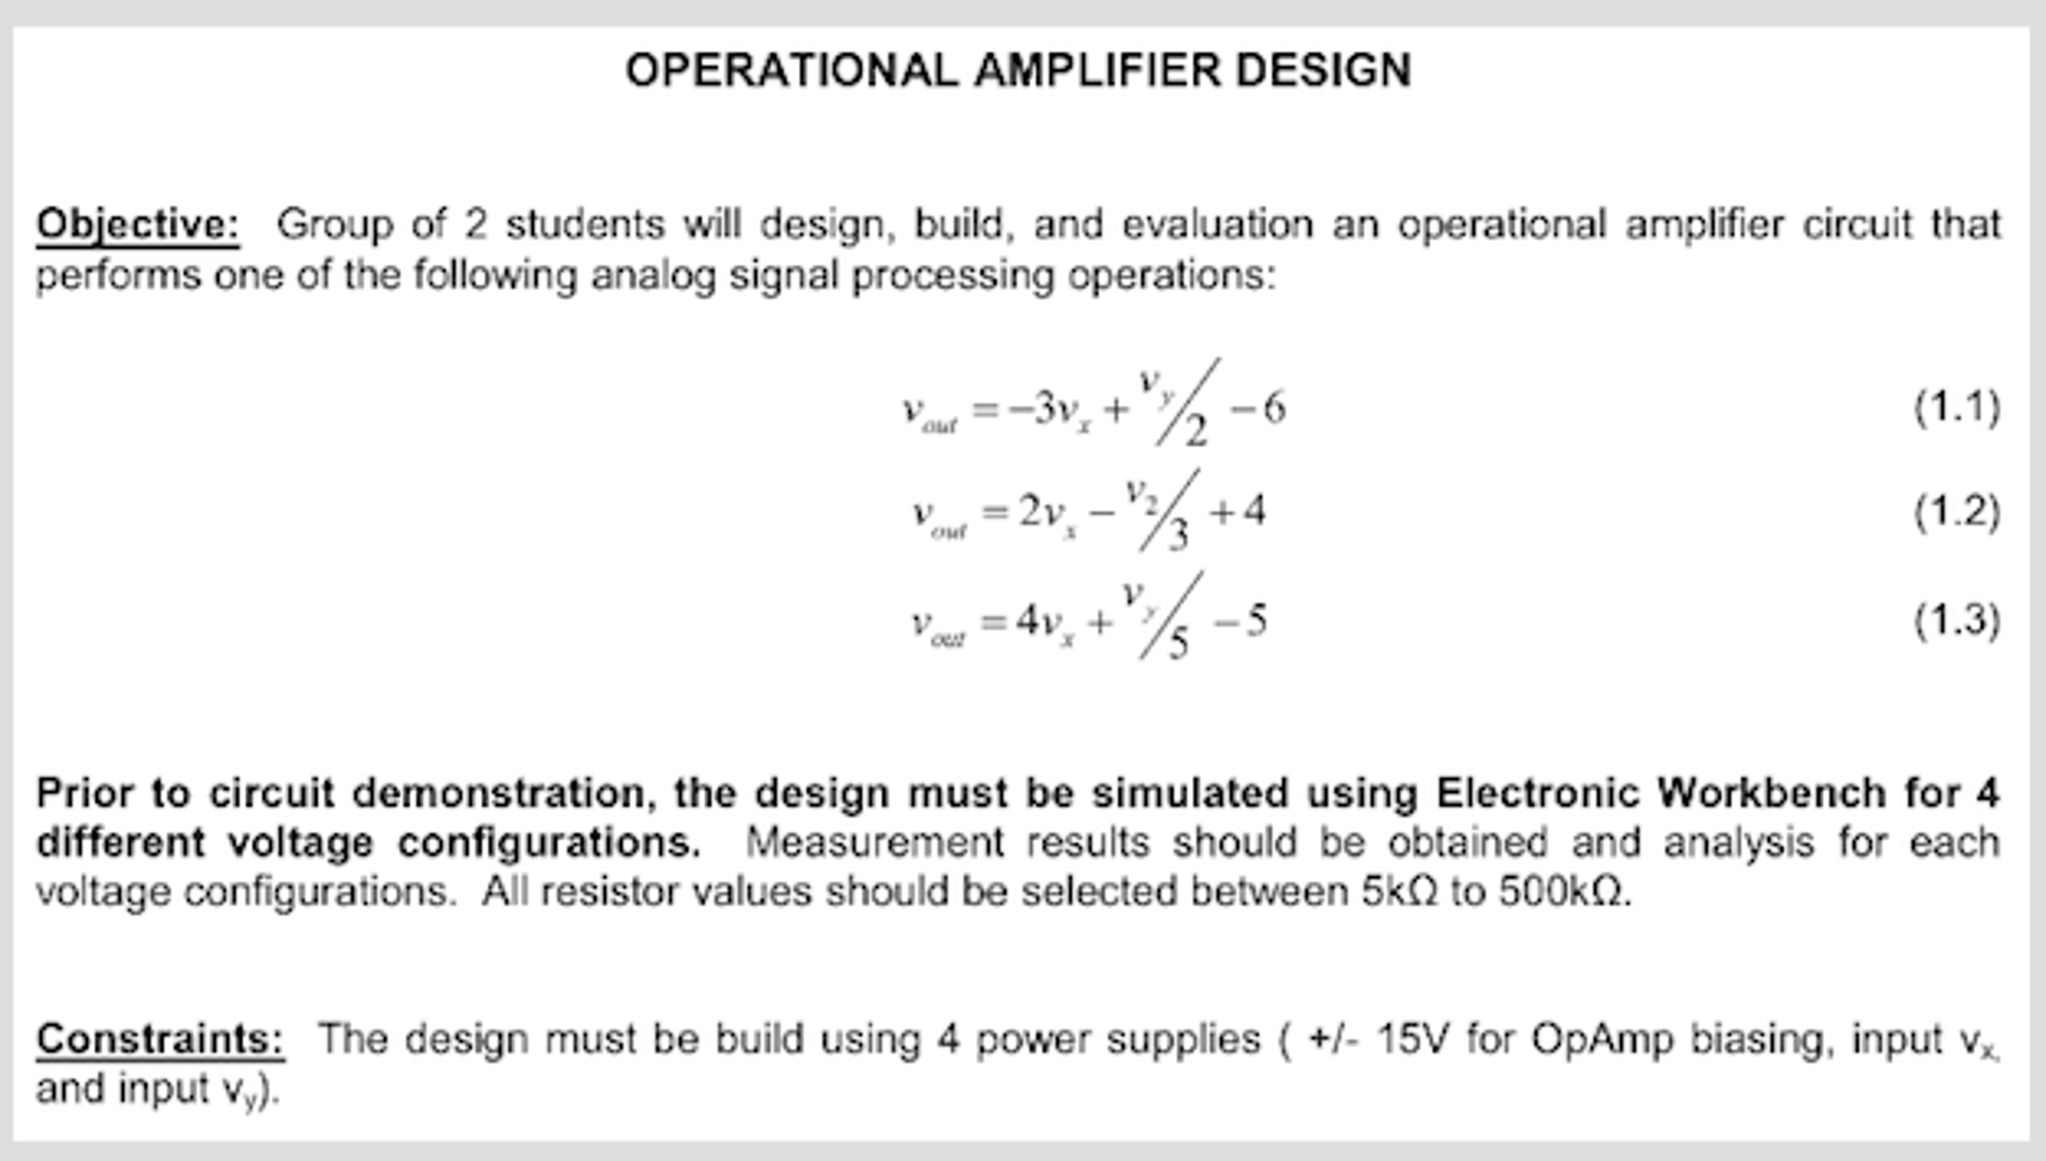 Group Of 2 Students Will Design Build And Evalua Analog Amplifier Circuits